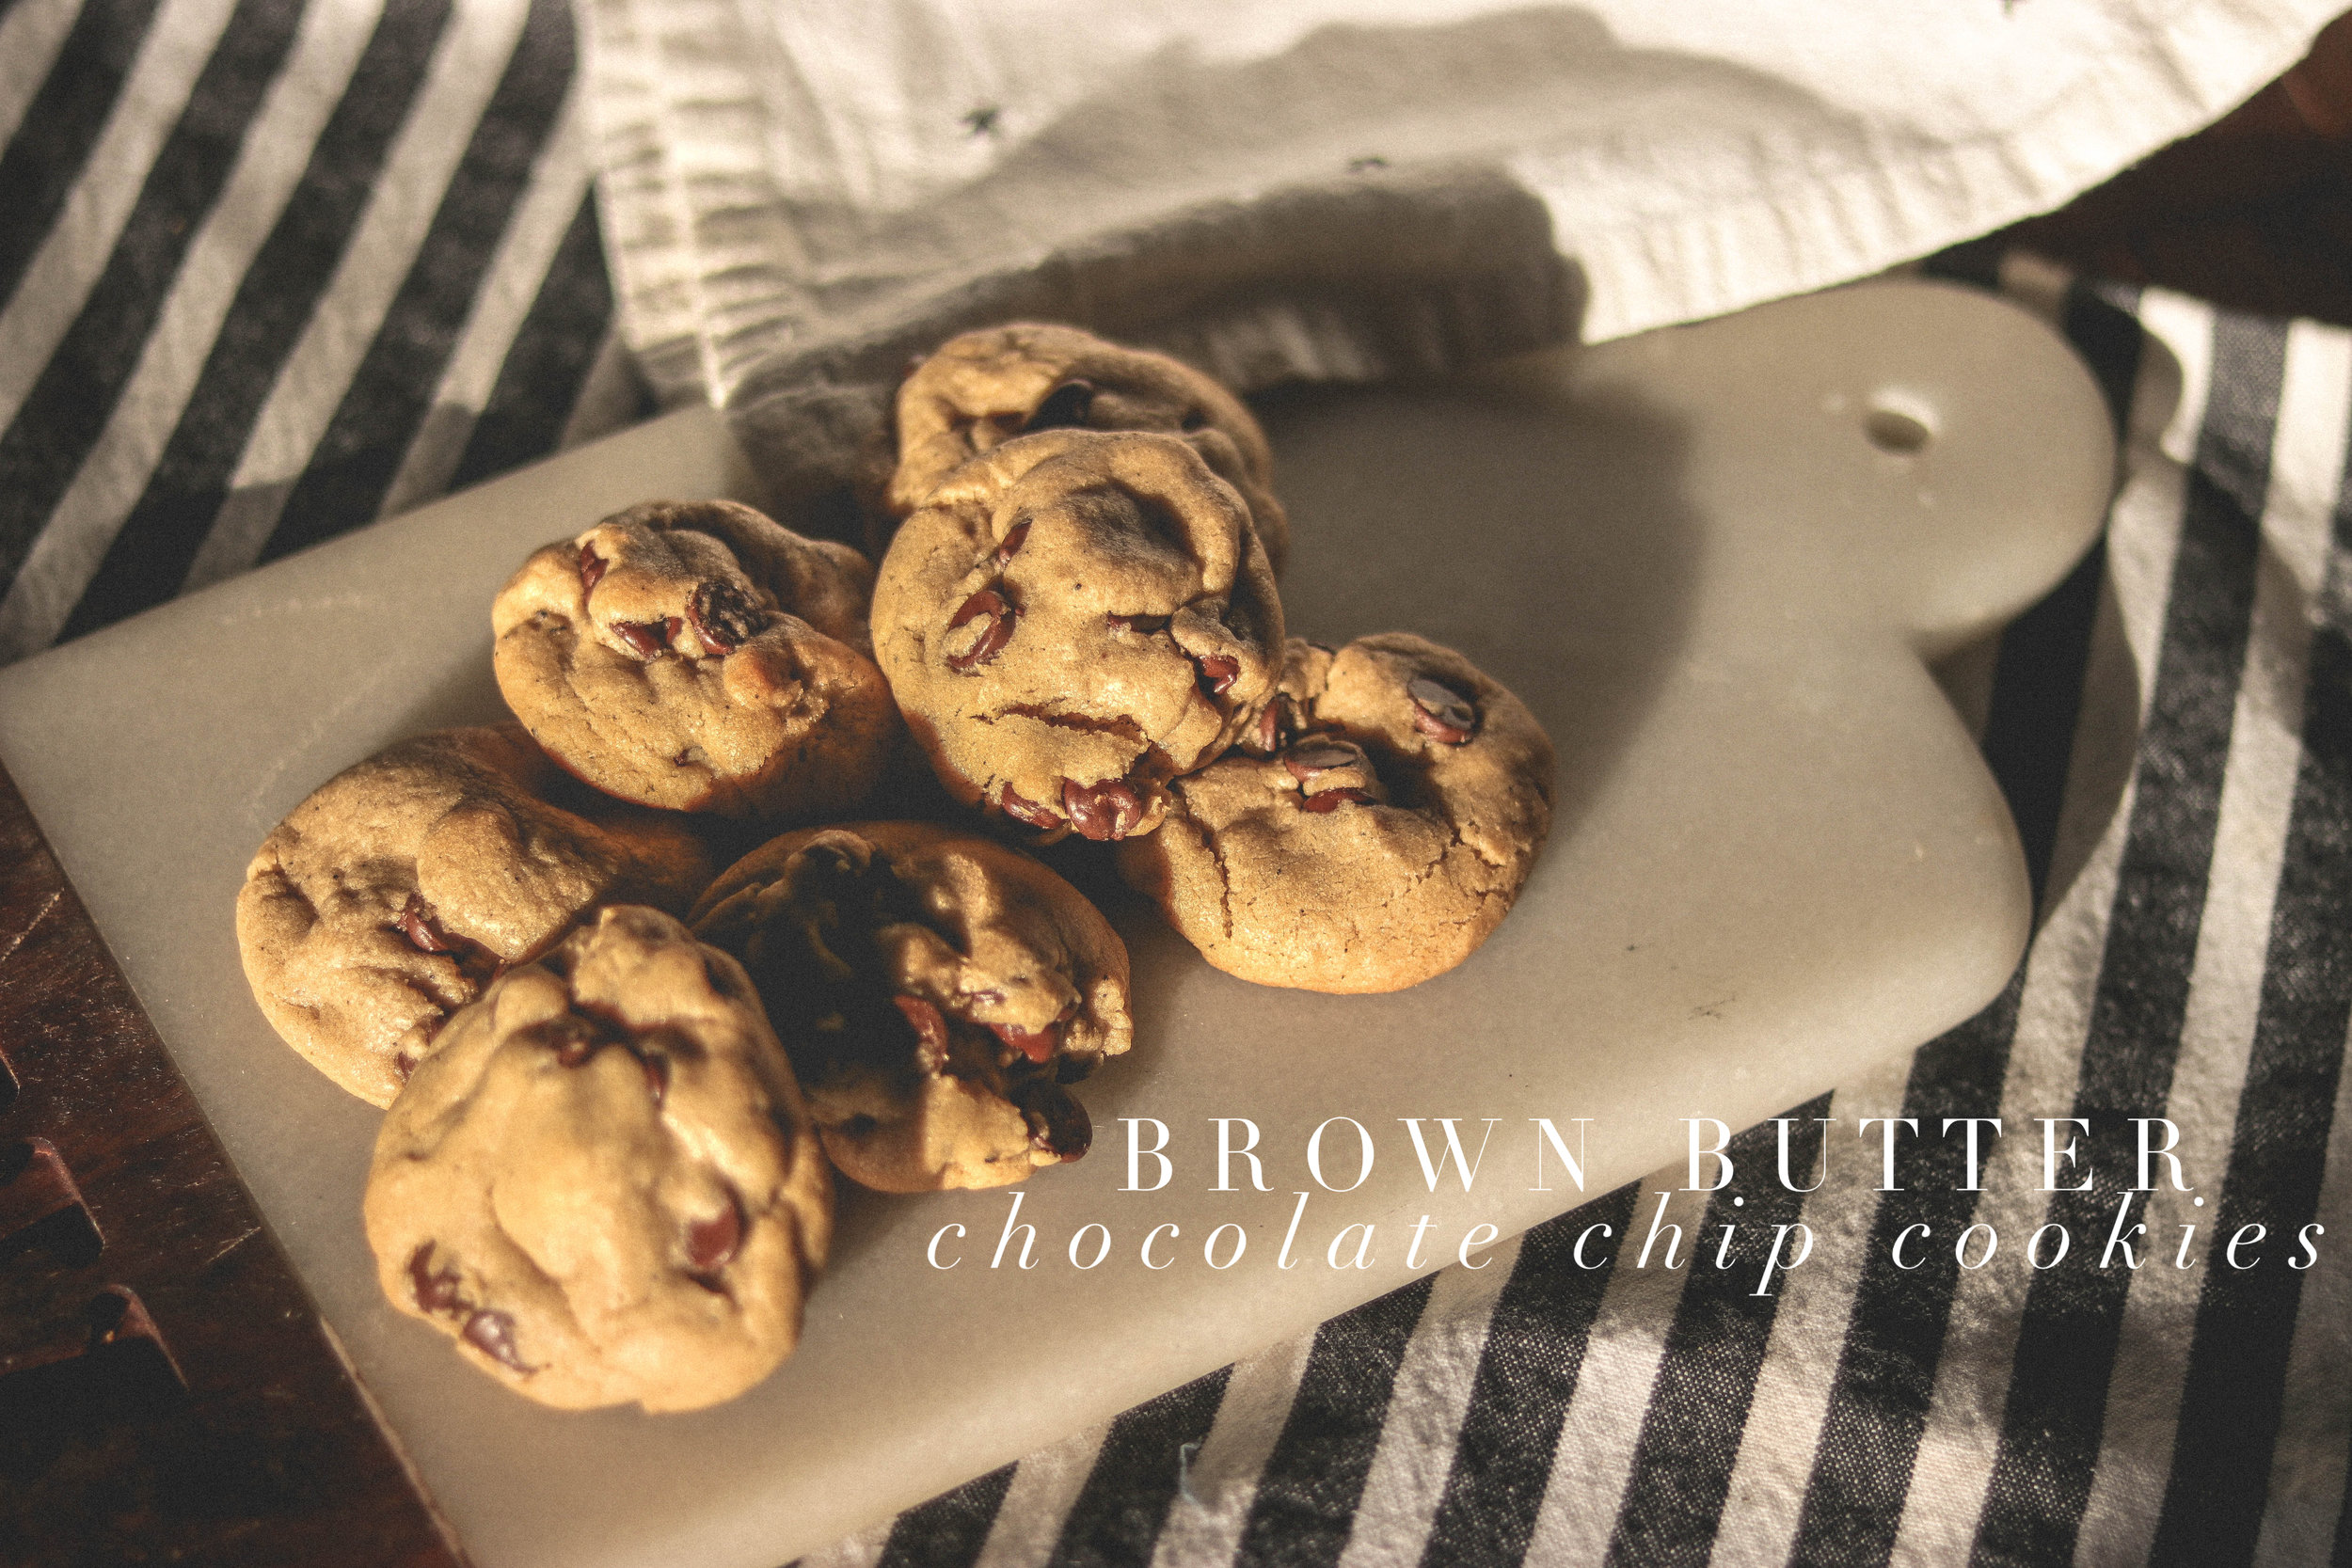 brown butter chocolate chip cookies 2.jpg